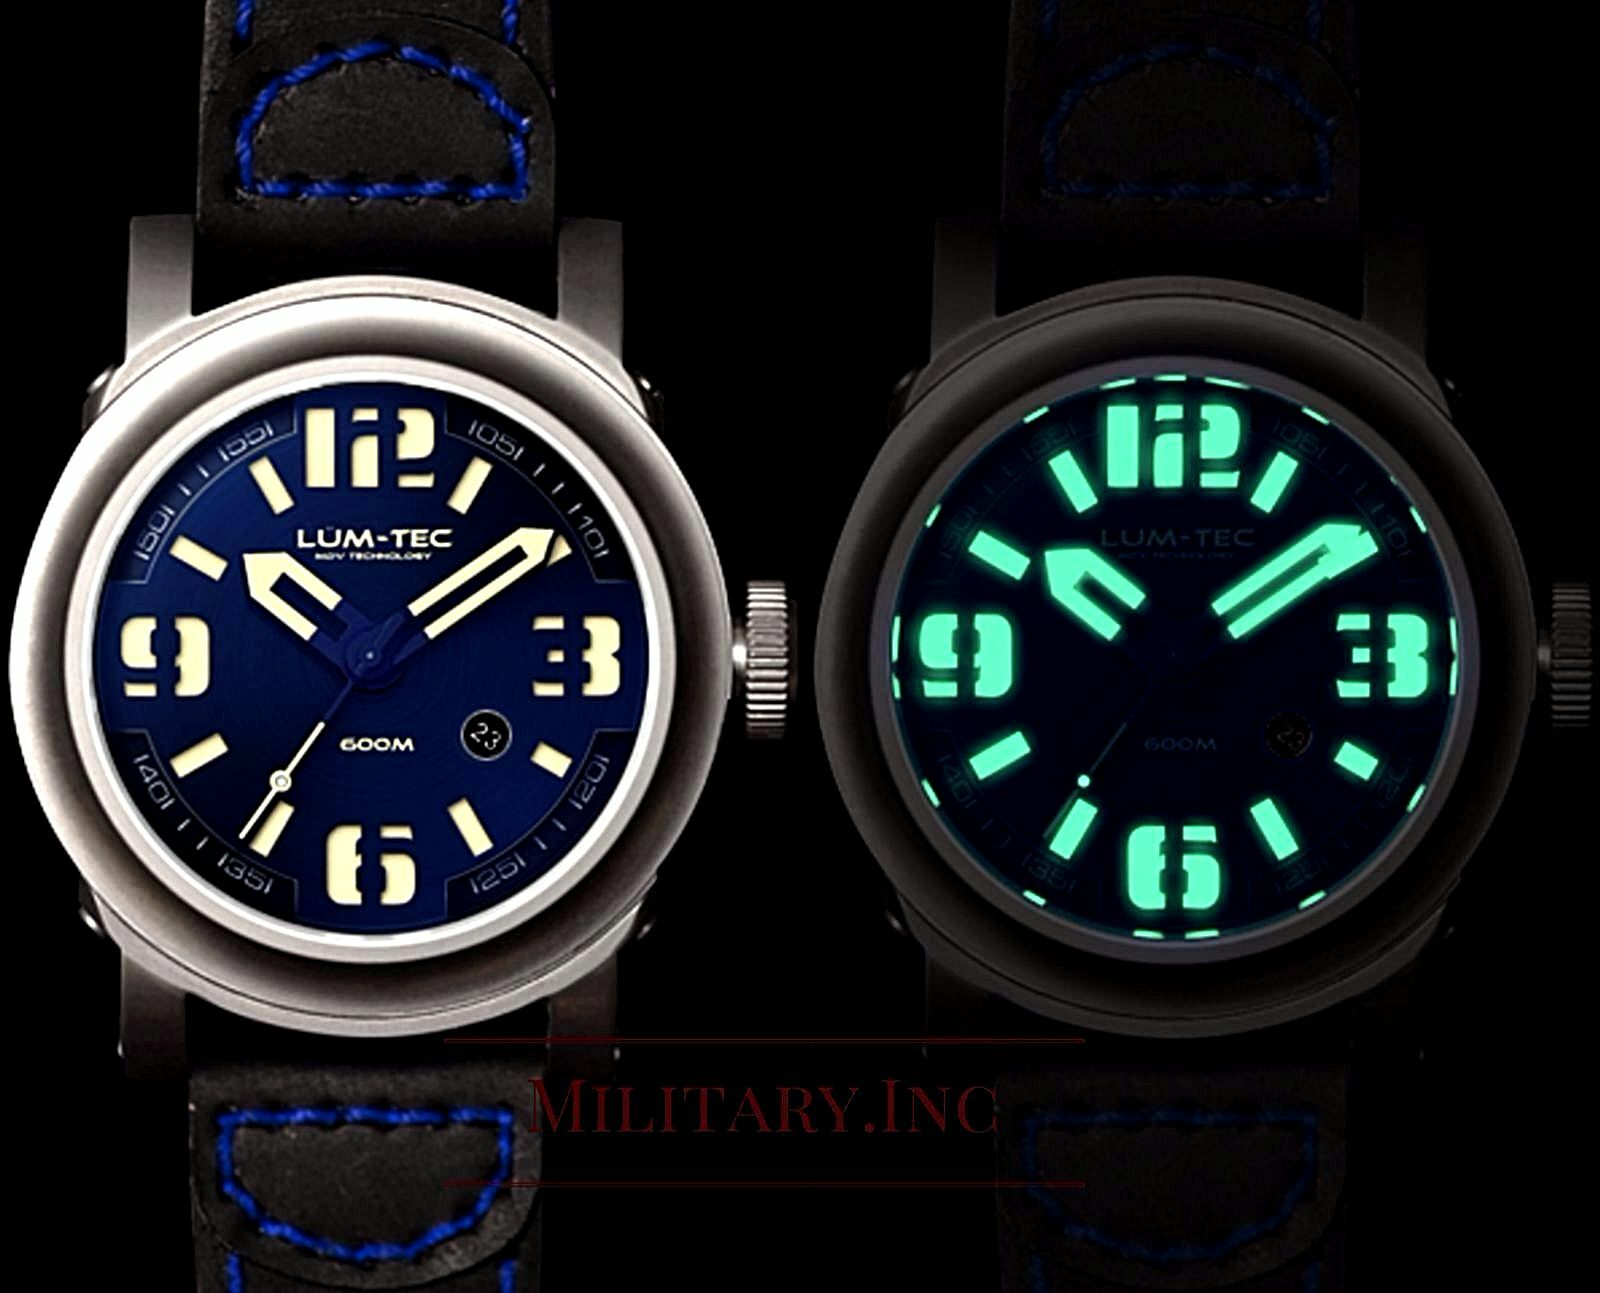 green tecwatch straps watches lum mg tec gmt w leather b nylon combatb combat watch